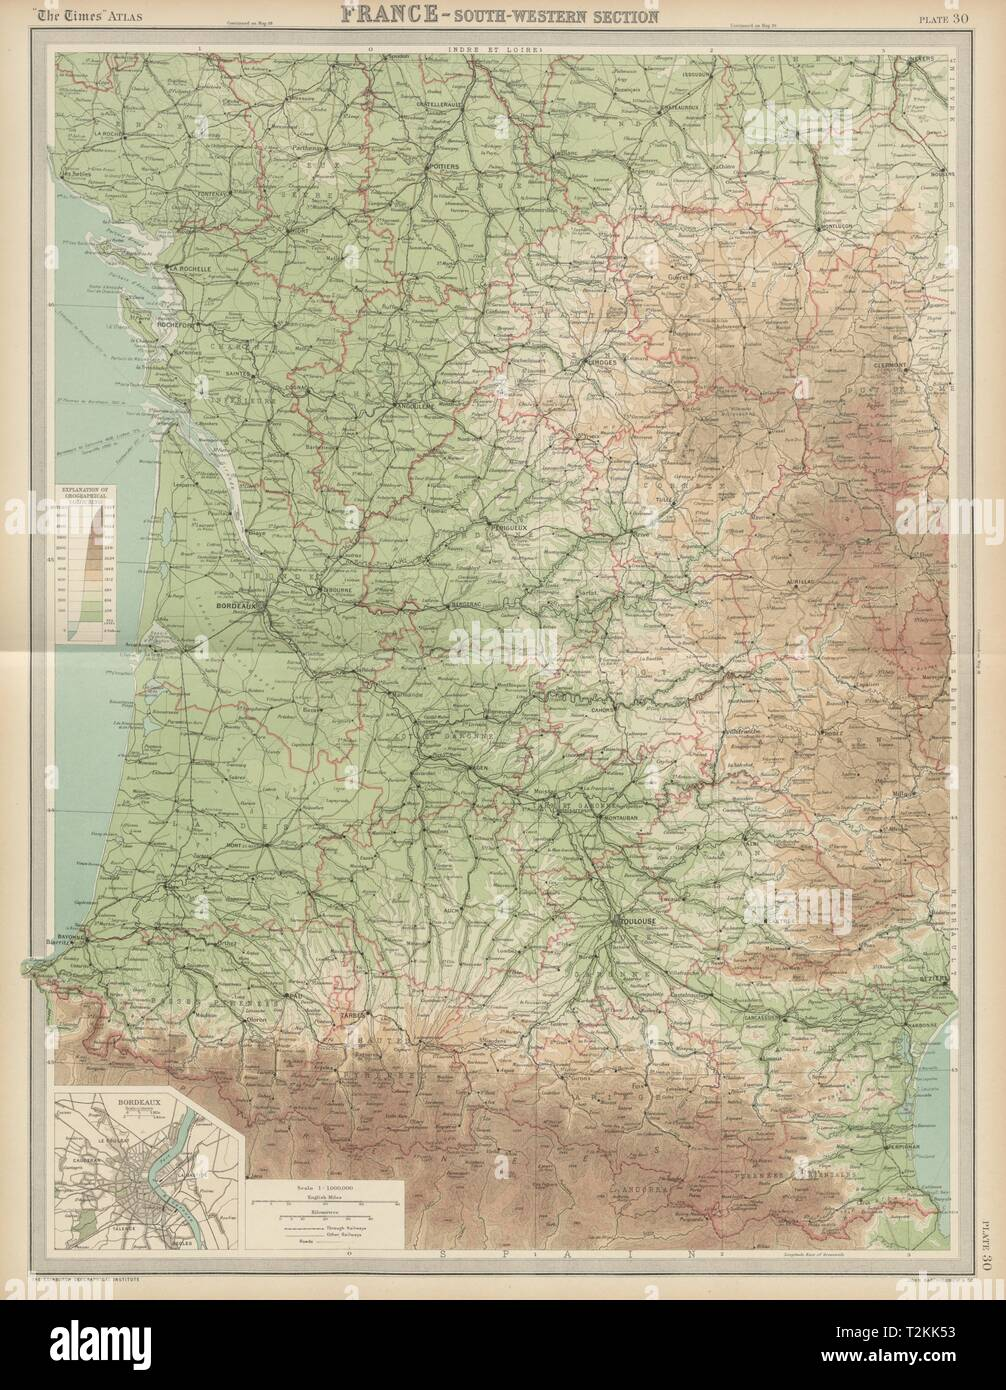 Map Of West France.South West France Aquitaine Pyrenees Charente Limousin The Times